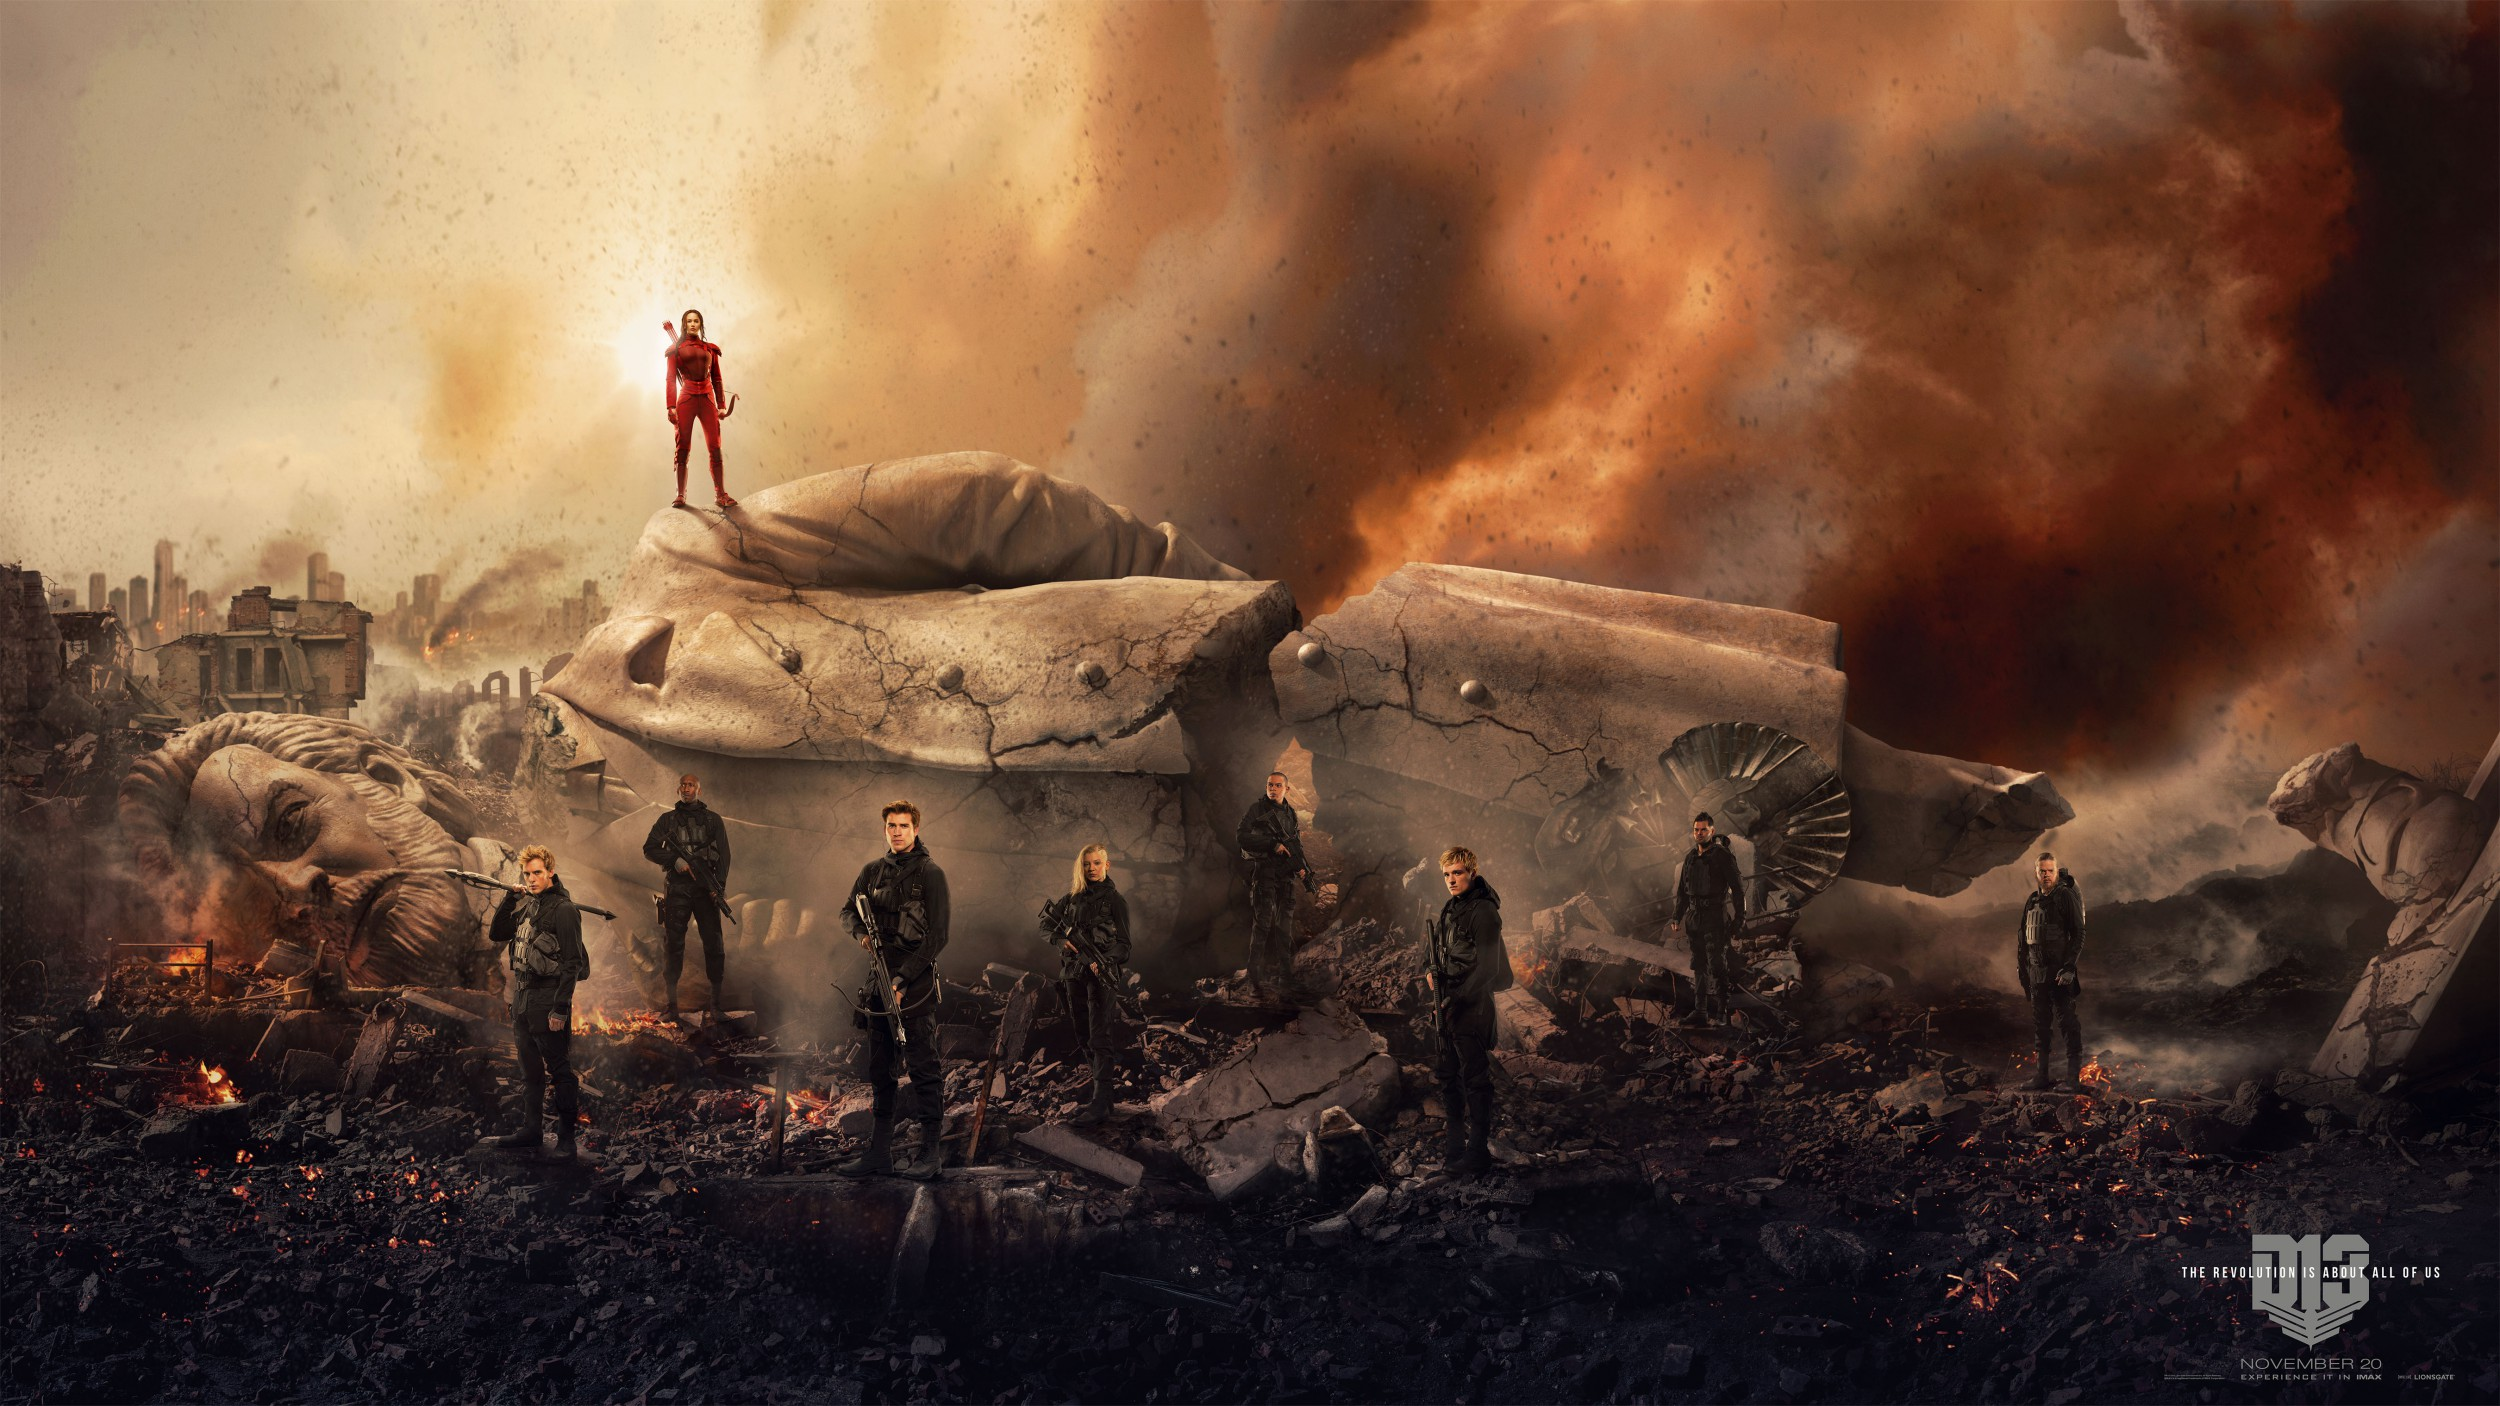 The Hunger Games Mockingjay - Part 2-25Agosto2015 (1)